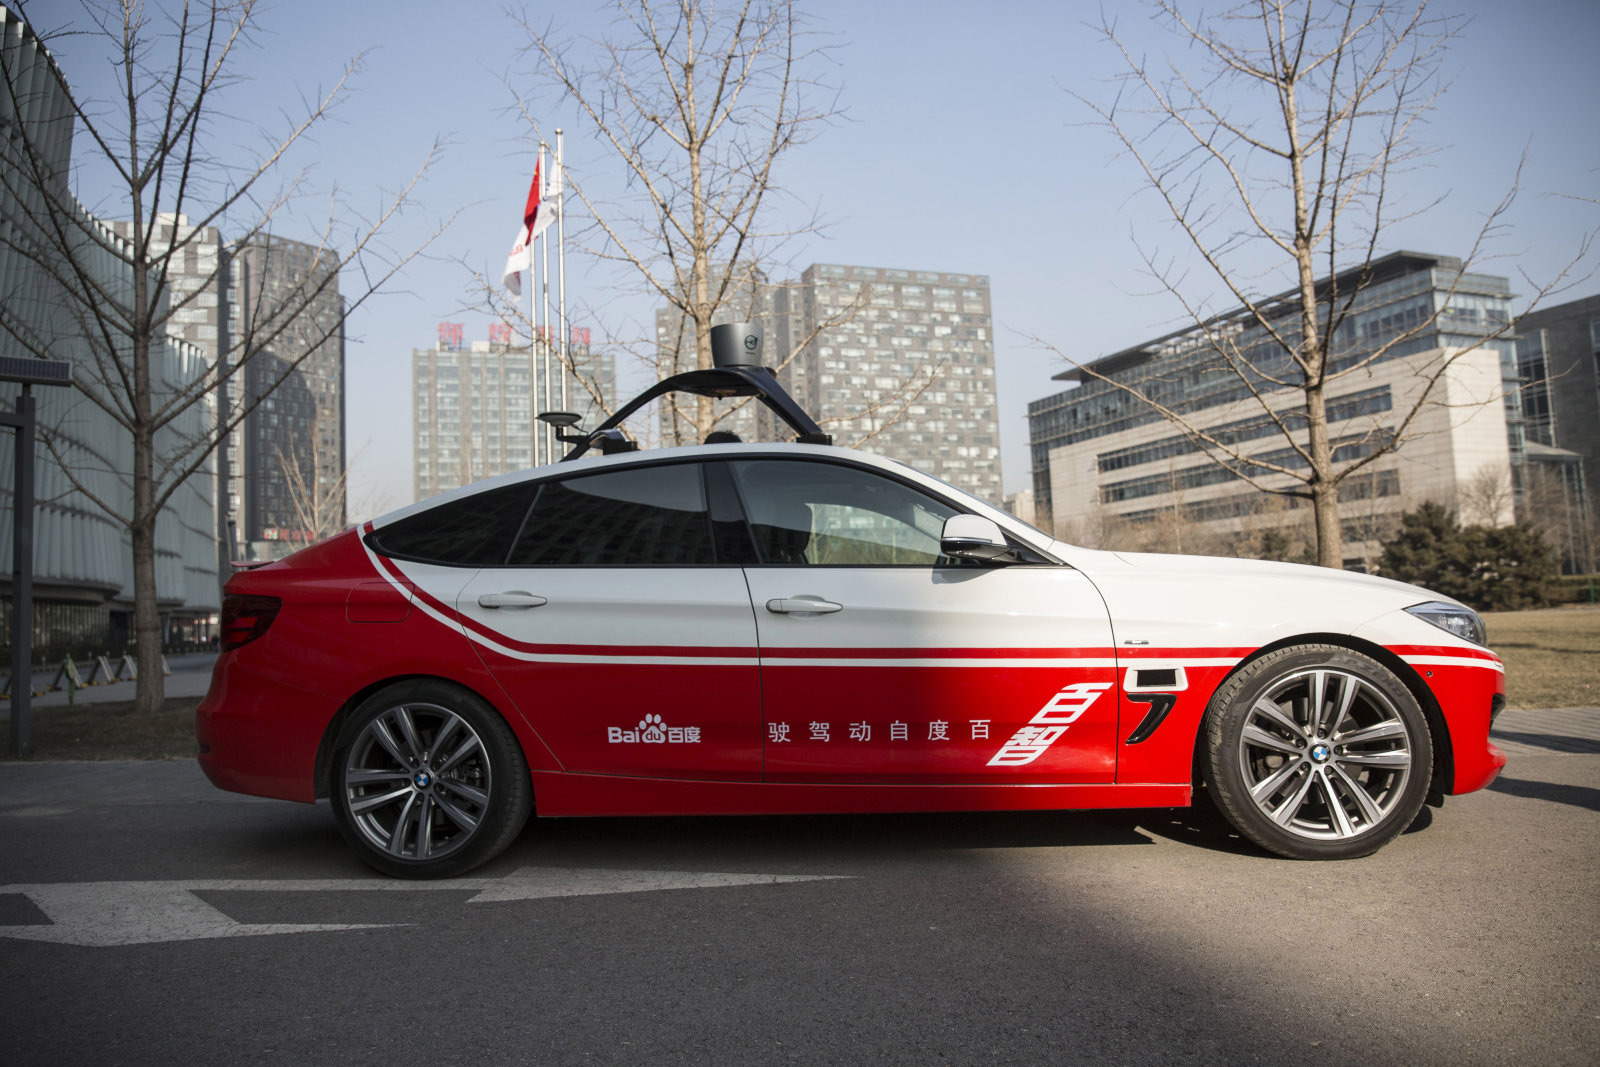 China Baidu autonomous car